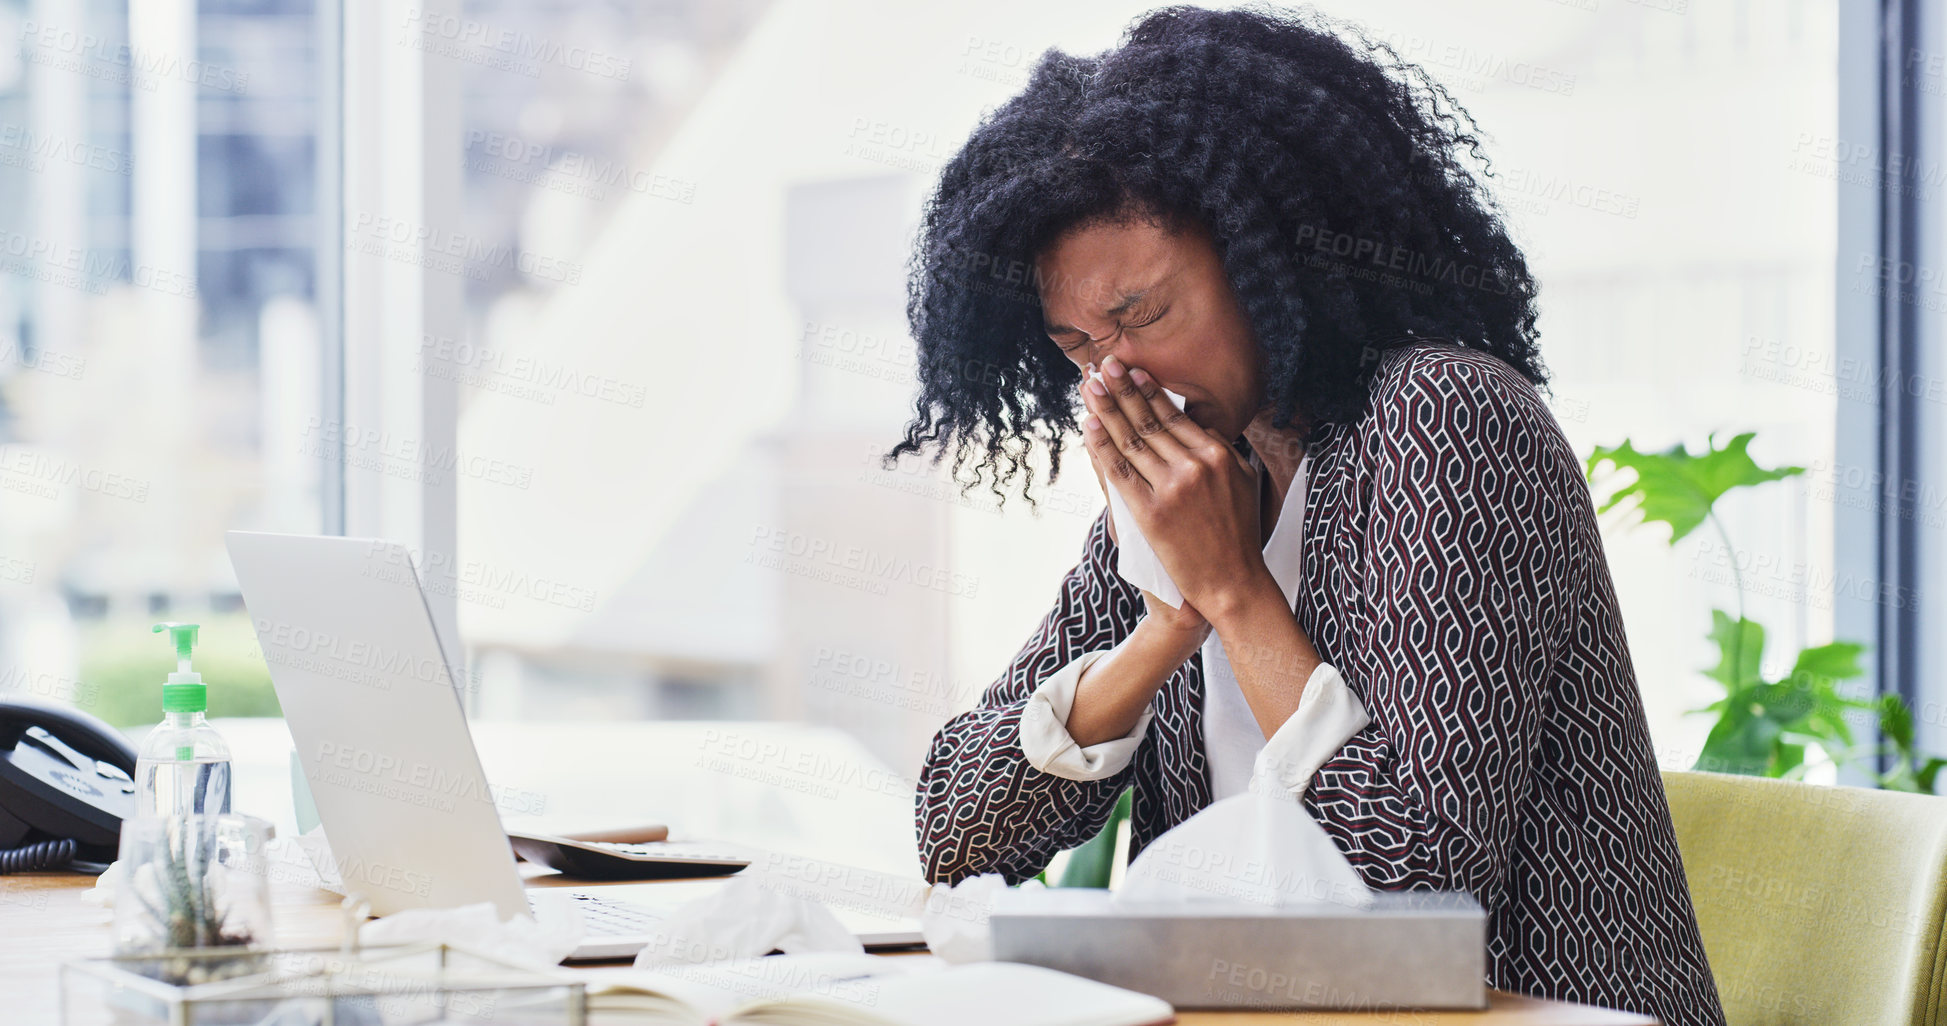 Buy stock photo Shot of a businesswoman feeling sick while working at her desk